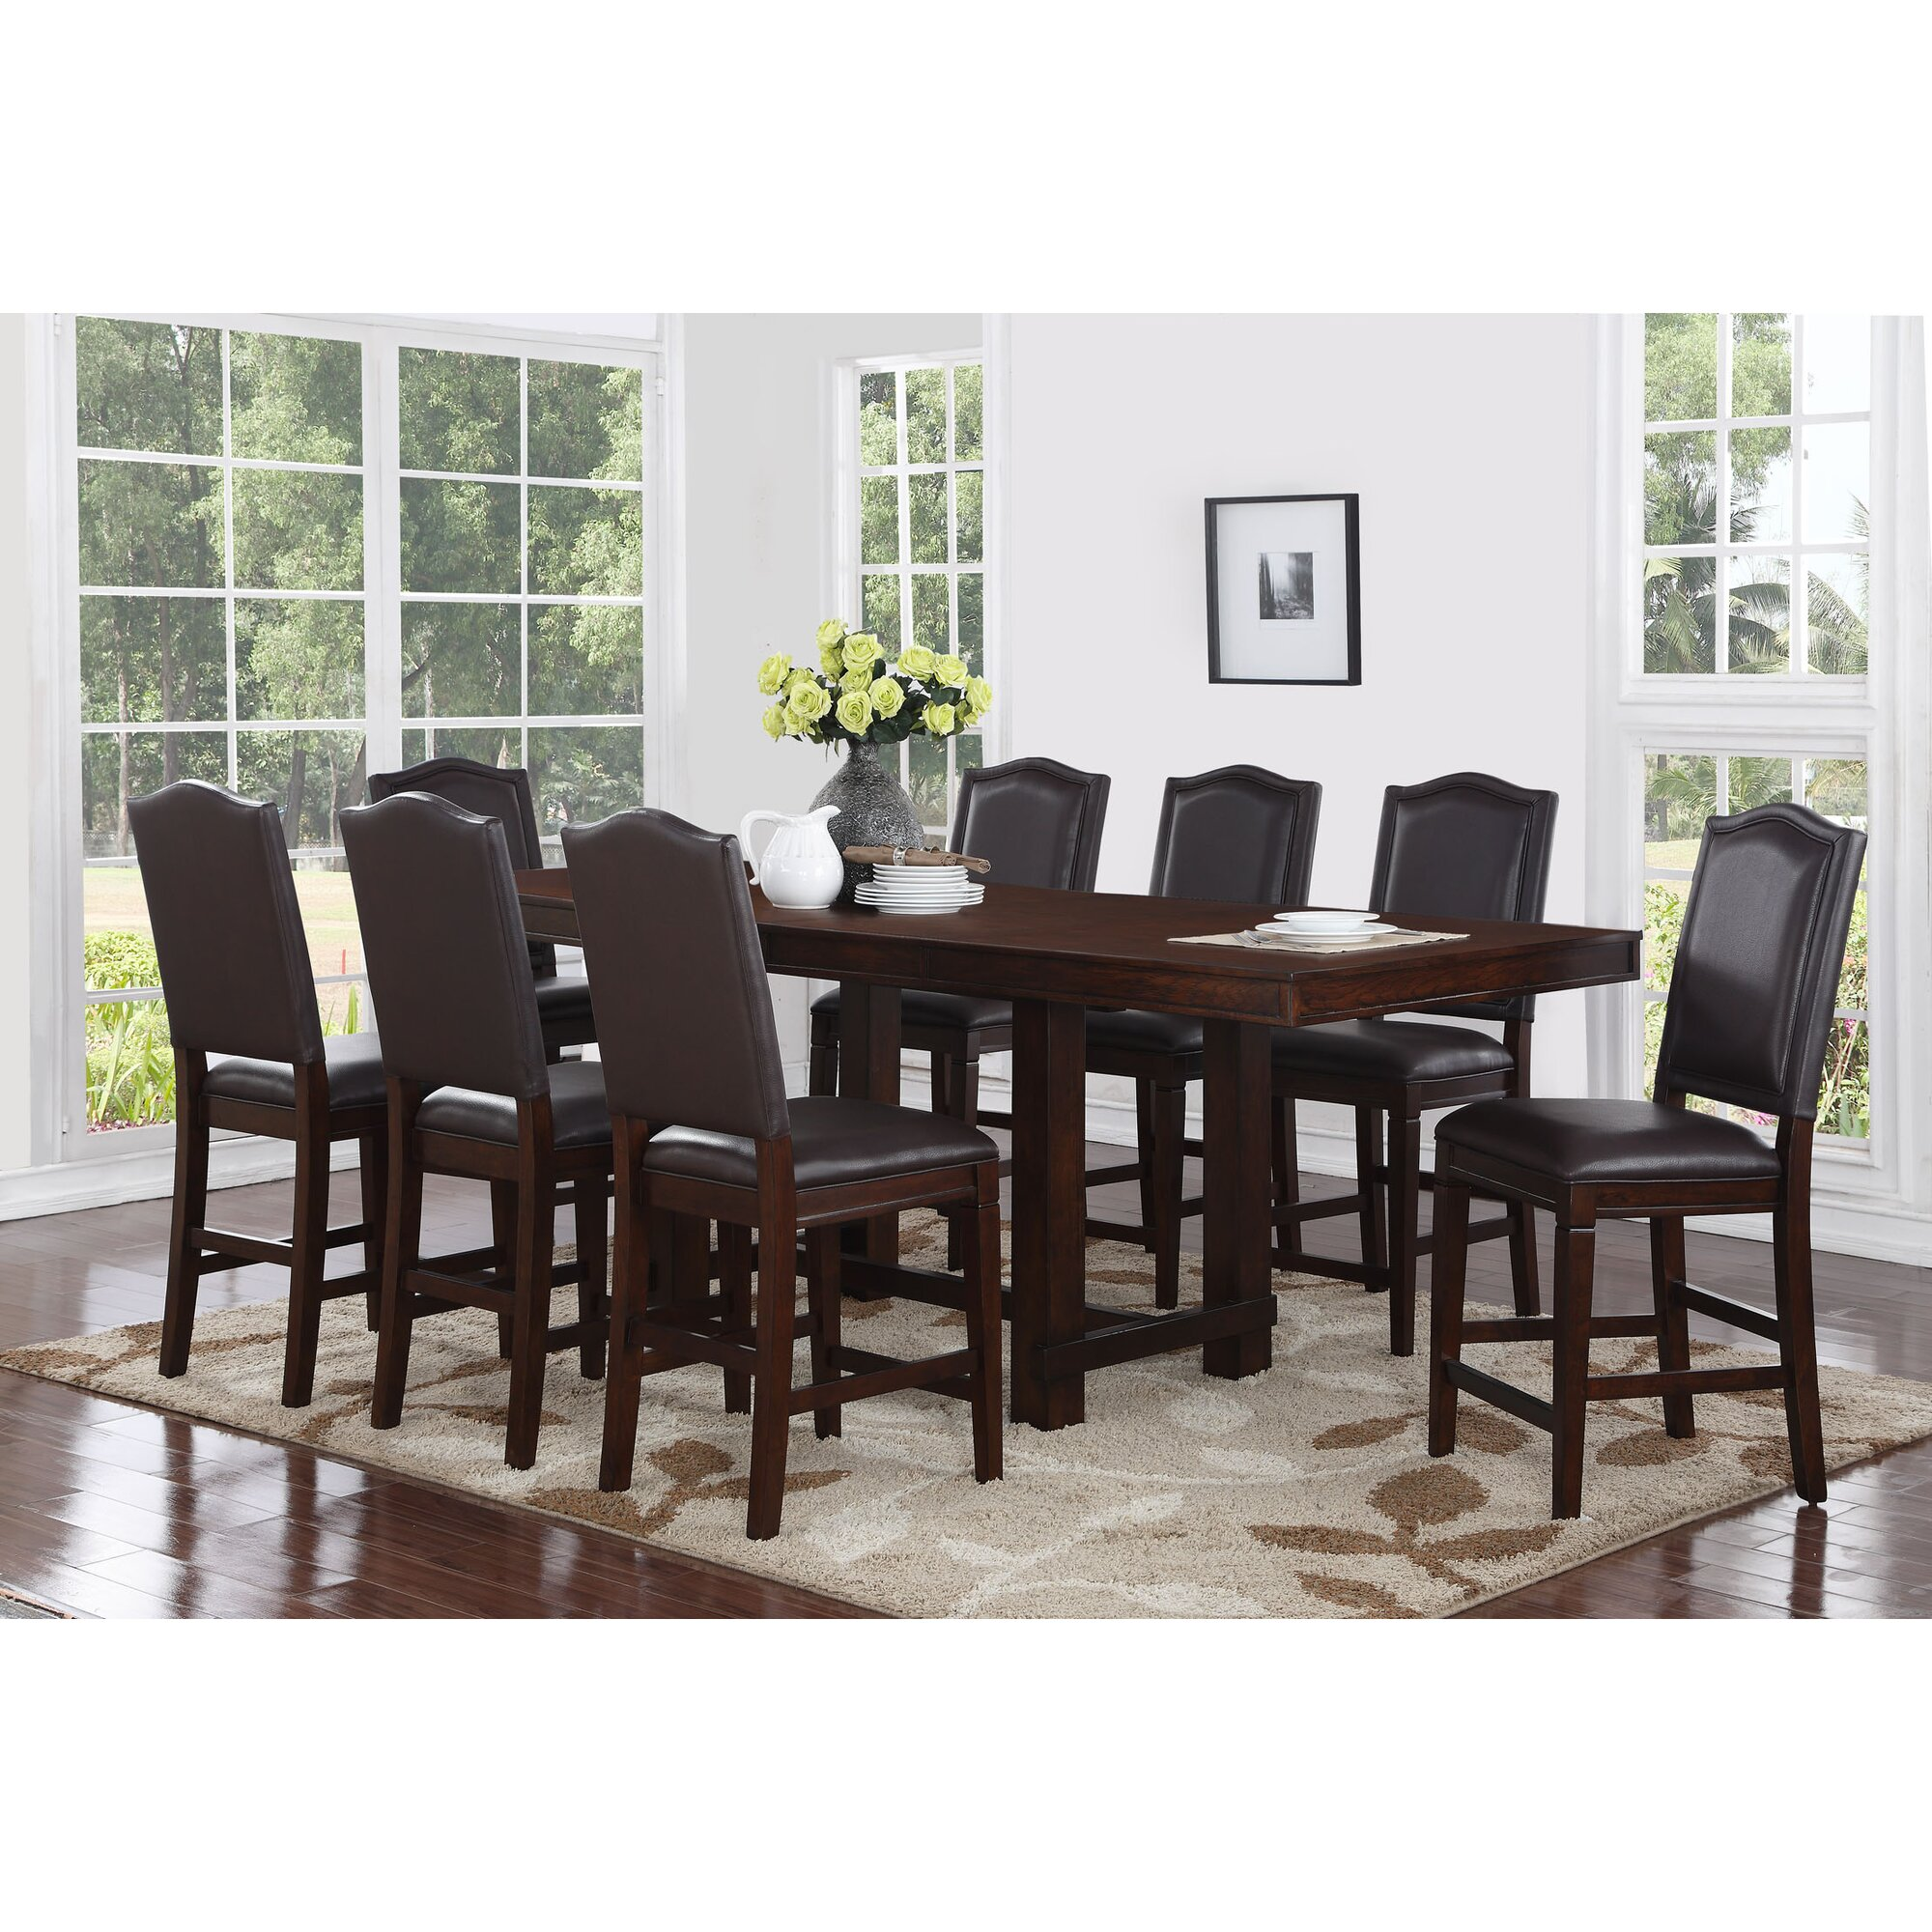 Darby Home Co Marcie 9 Piece Counter Height Dining Set   Wayfair